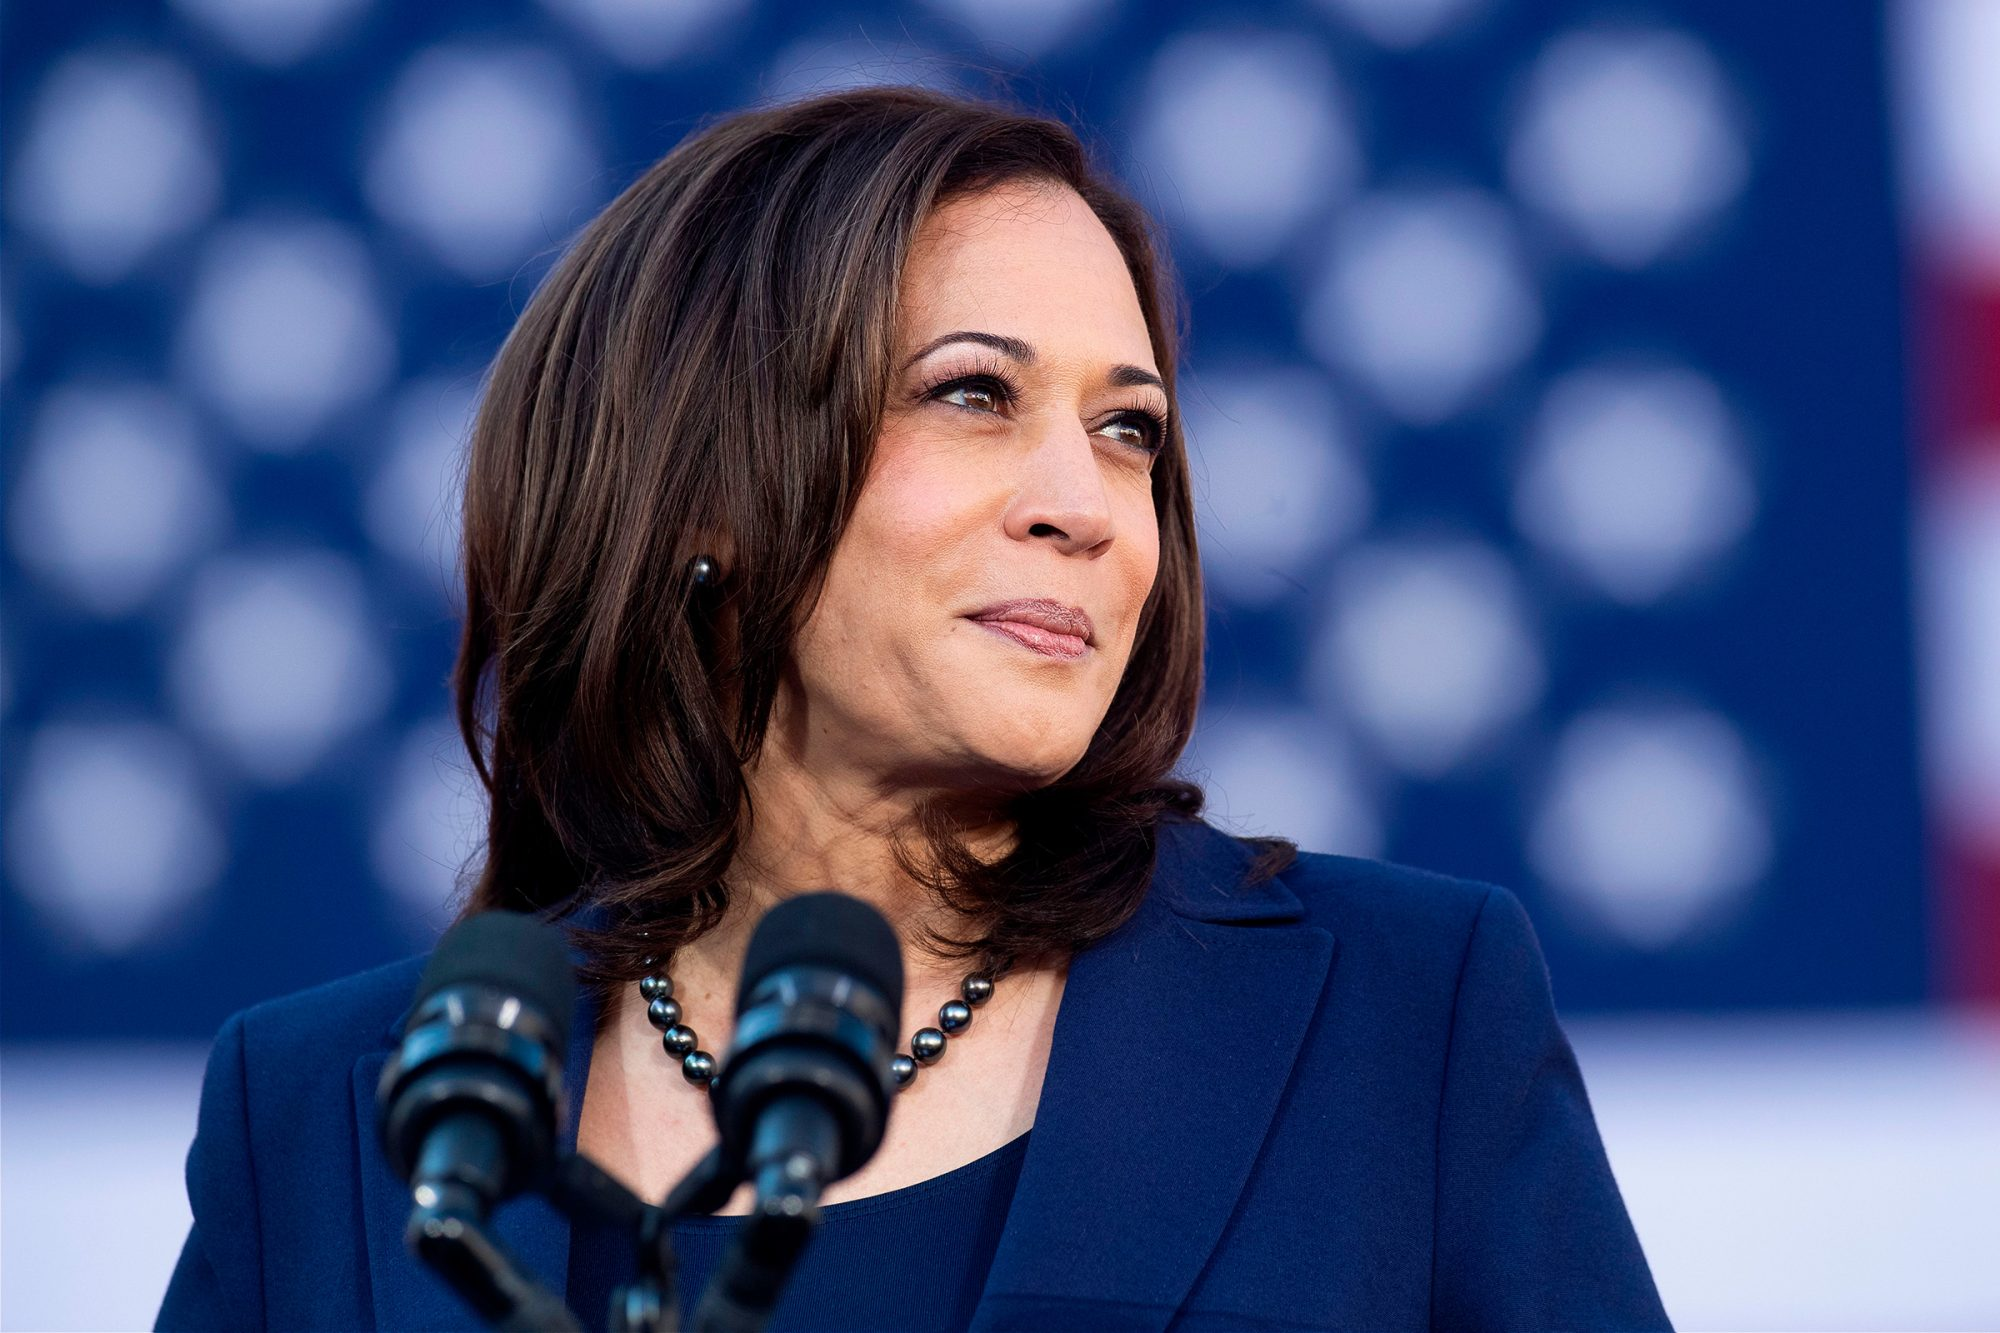 California Senator Kamala Harris speaks during a rally launching her presidential campaign on January 27, 2019